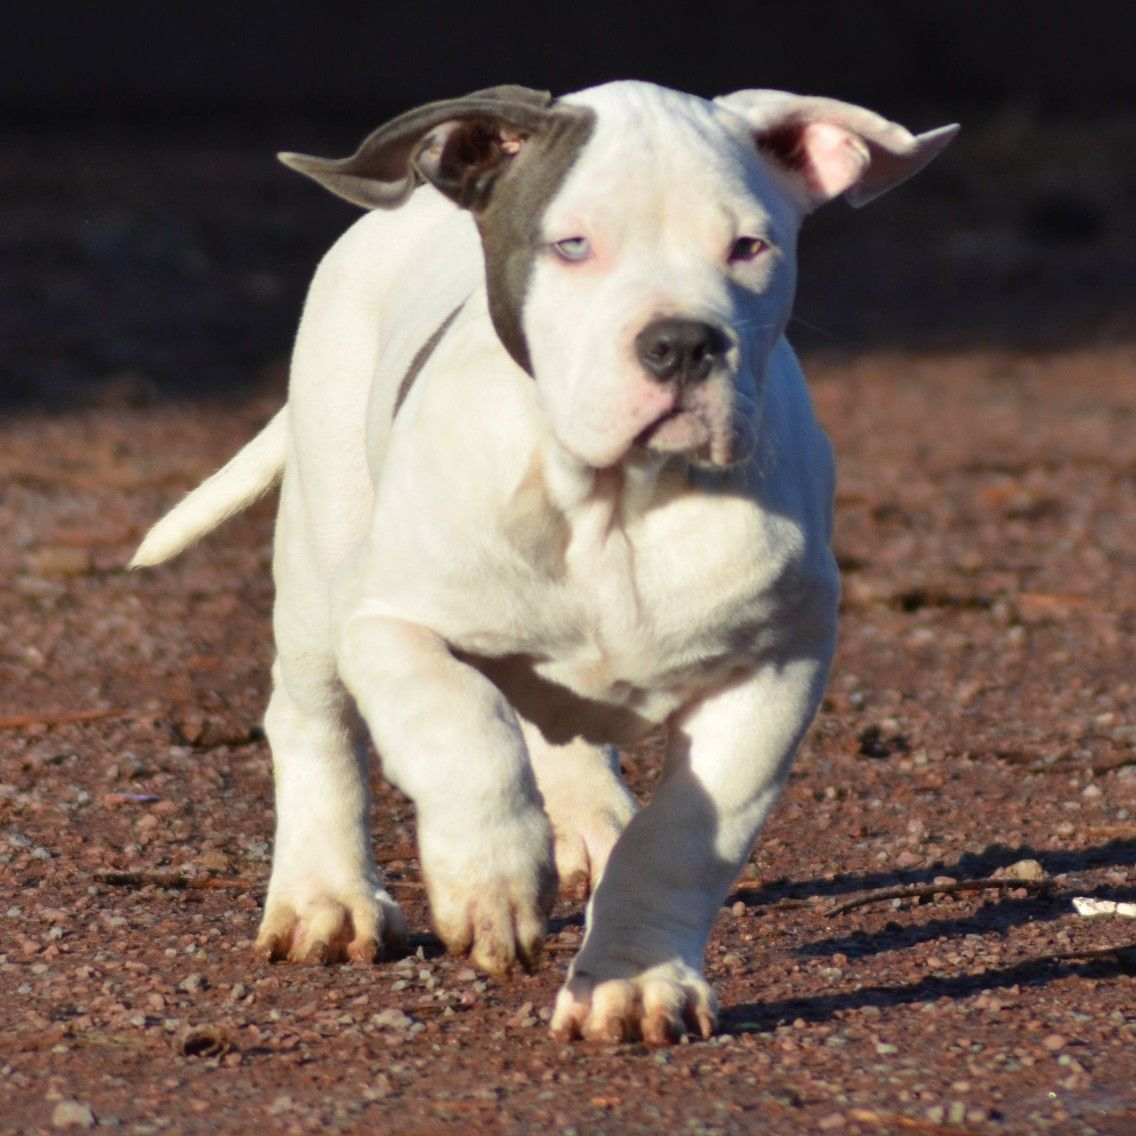 Pitbull Chiot Puppy Puppies Pero Cane American Bully Xl Xxl Bully Pitbull A Vendre For Sale France Belgique Kennel Eleva Bully Dog Bully Pitbull American Bully